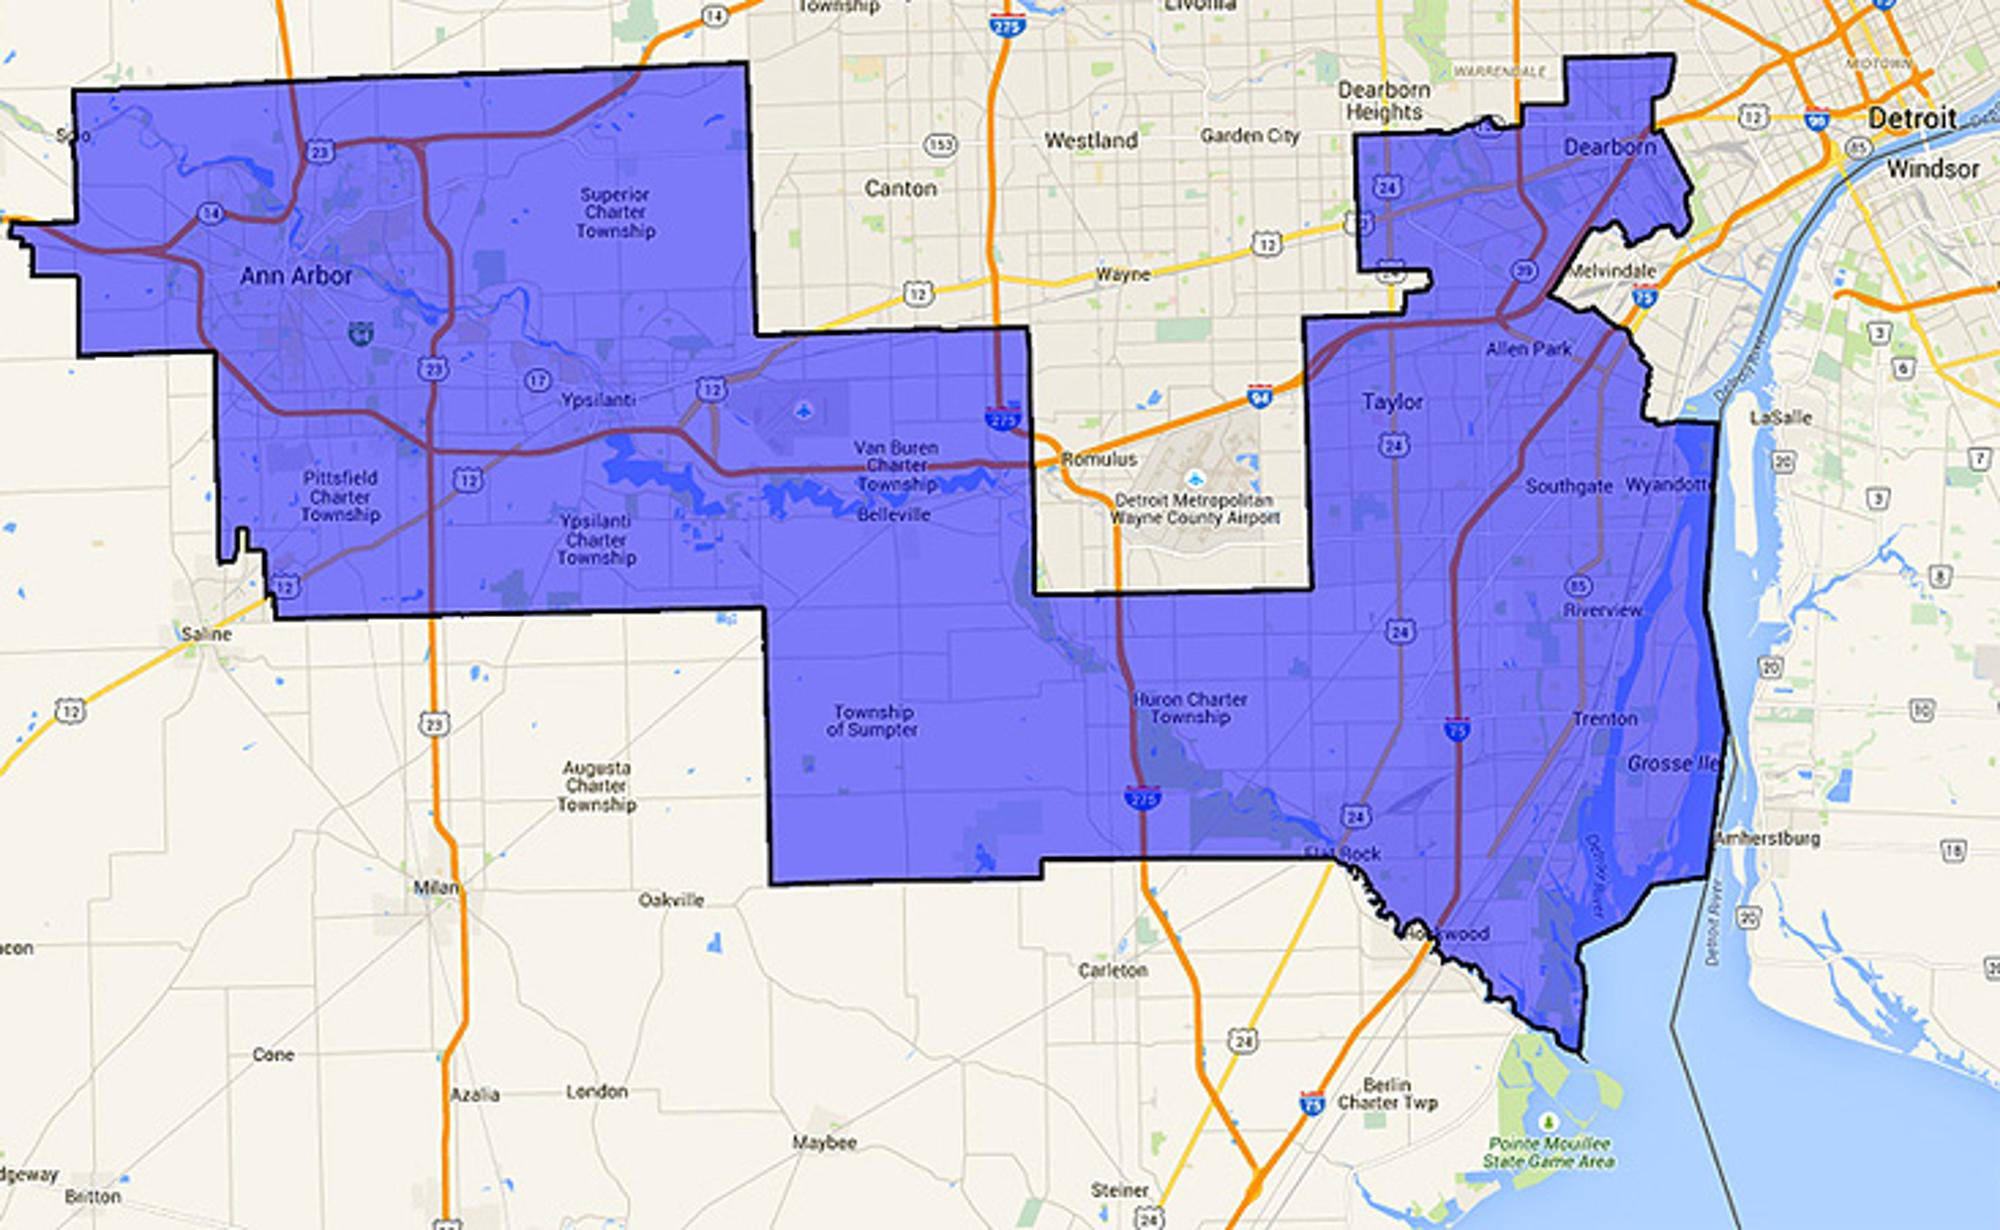 Michigan's 12th Congressional District includes Ann Arbor, Dearborn and Downriver.jeffjones4congress.com